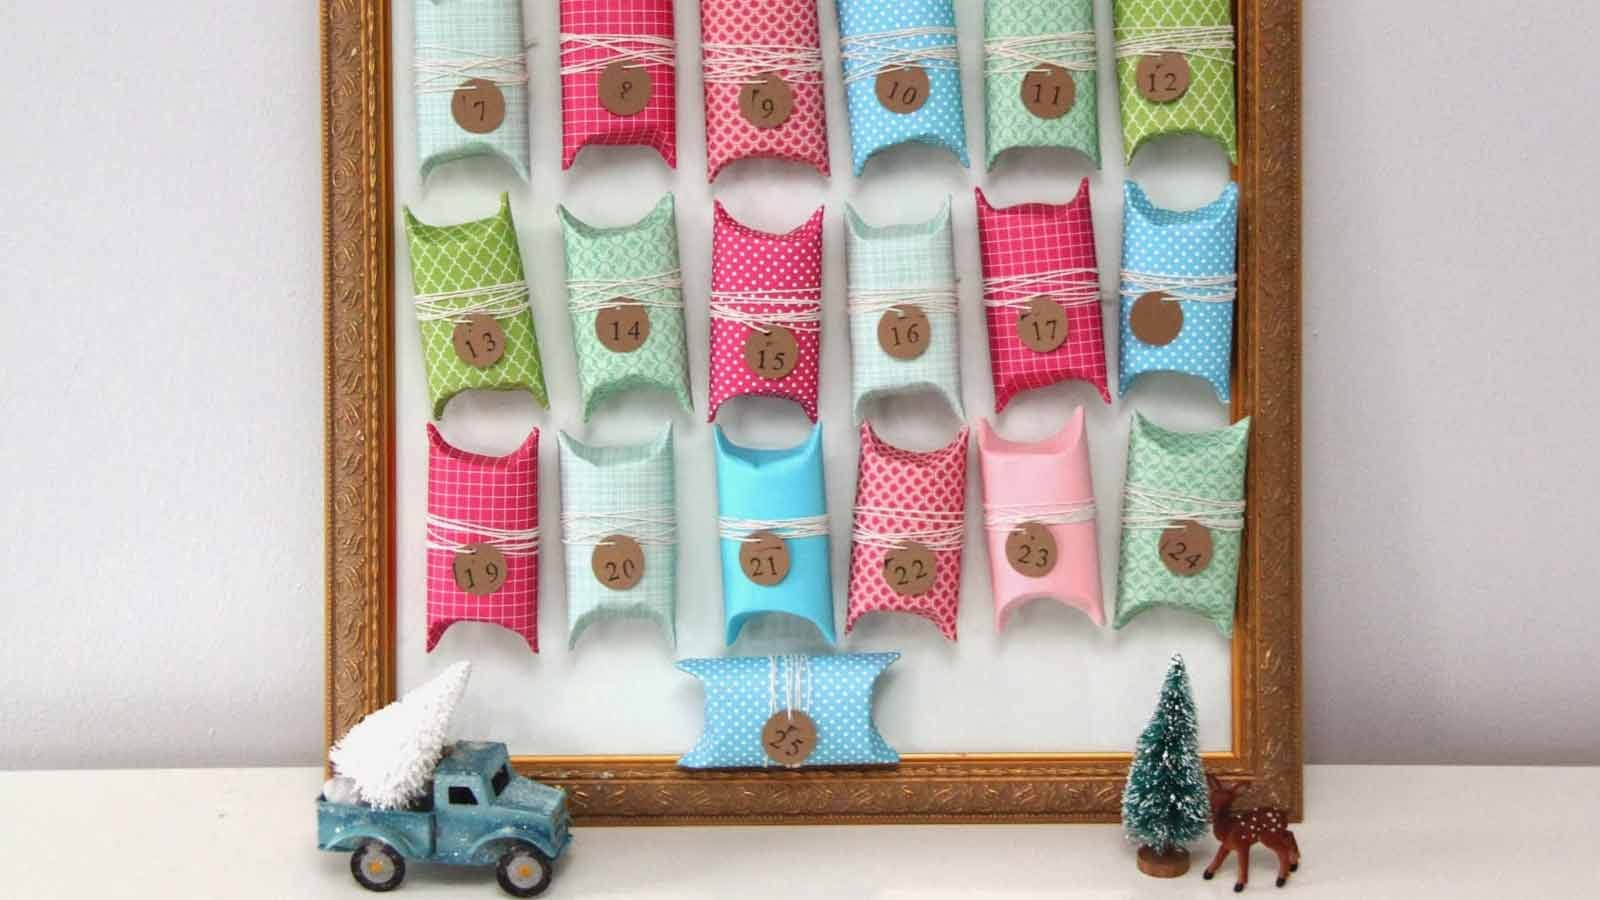 colorful advent calendar made from toilet paper tube sections wrapped in paper